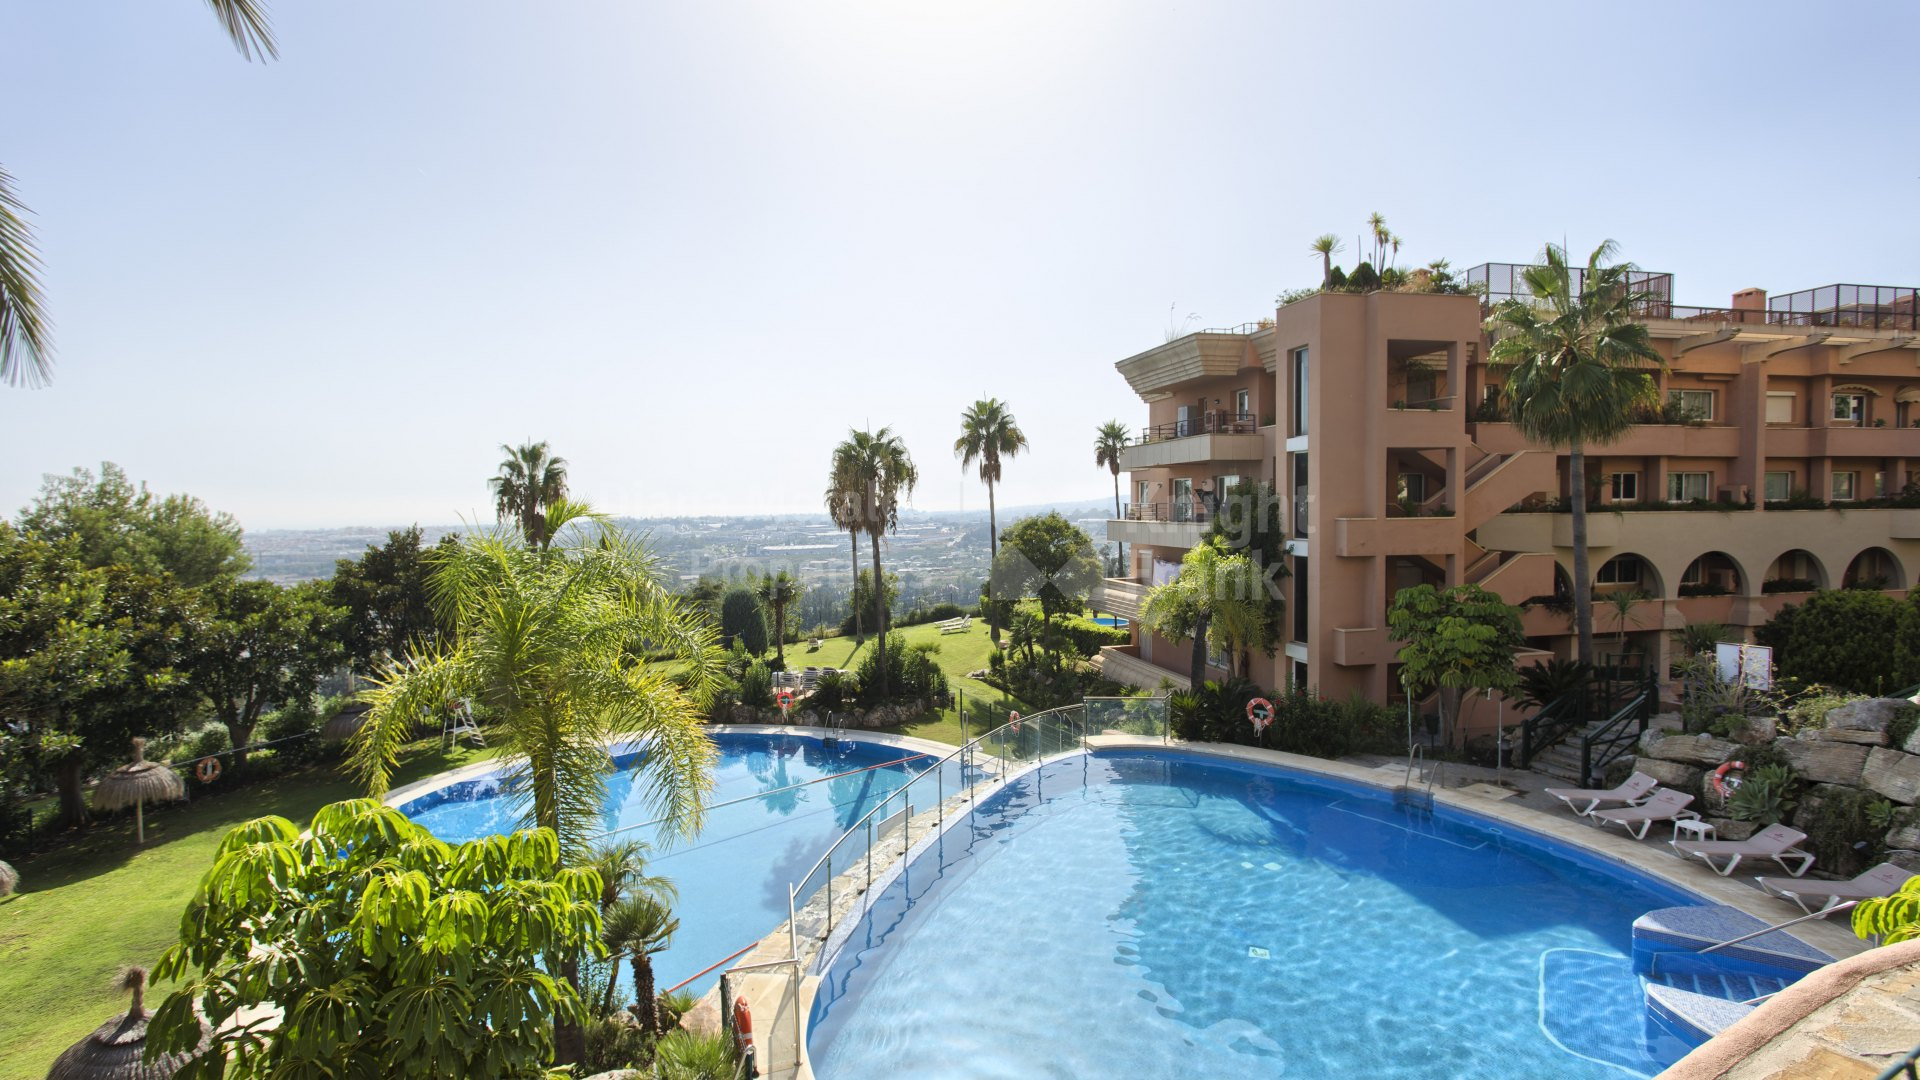 Gfk Pool Sale Apartment Close To Golf Course Apartment For Sale In Magna Marbella Nueva Andalucia